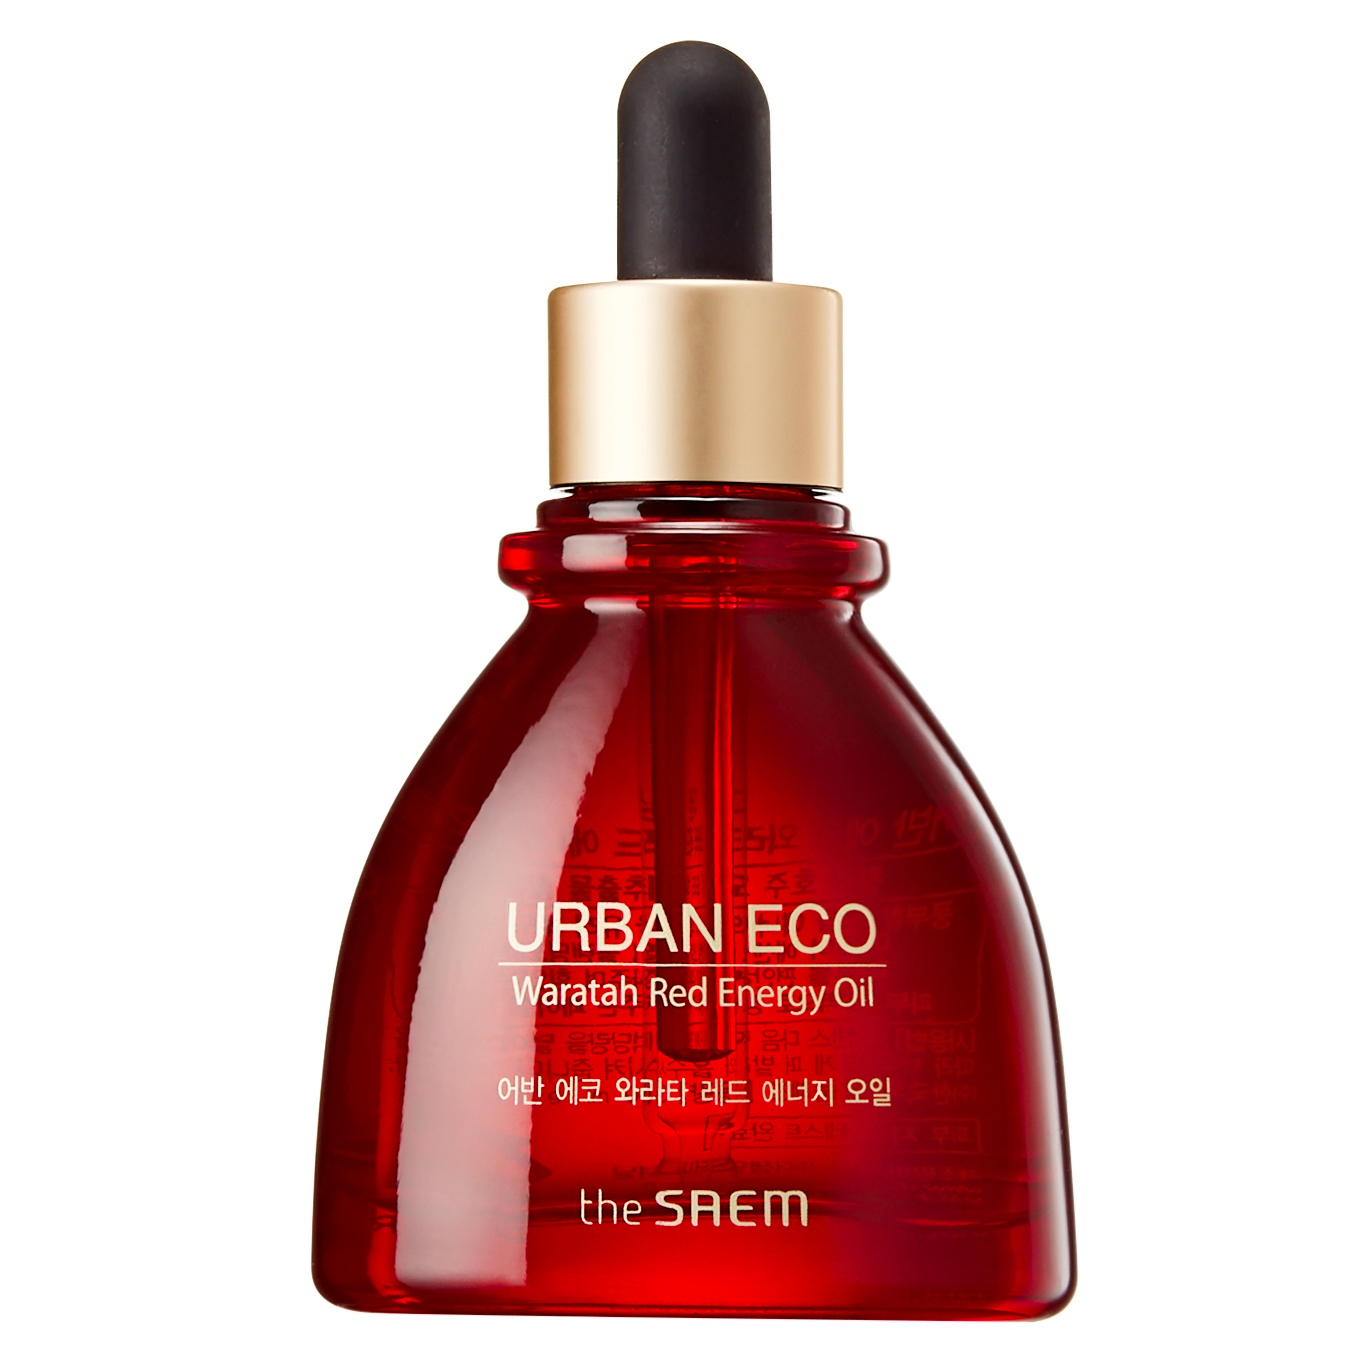 The Saem Urban Eco Waratah Firming Seed Oil